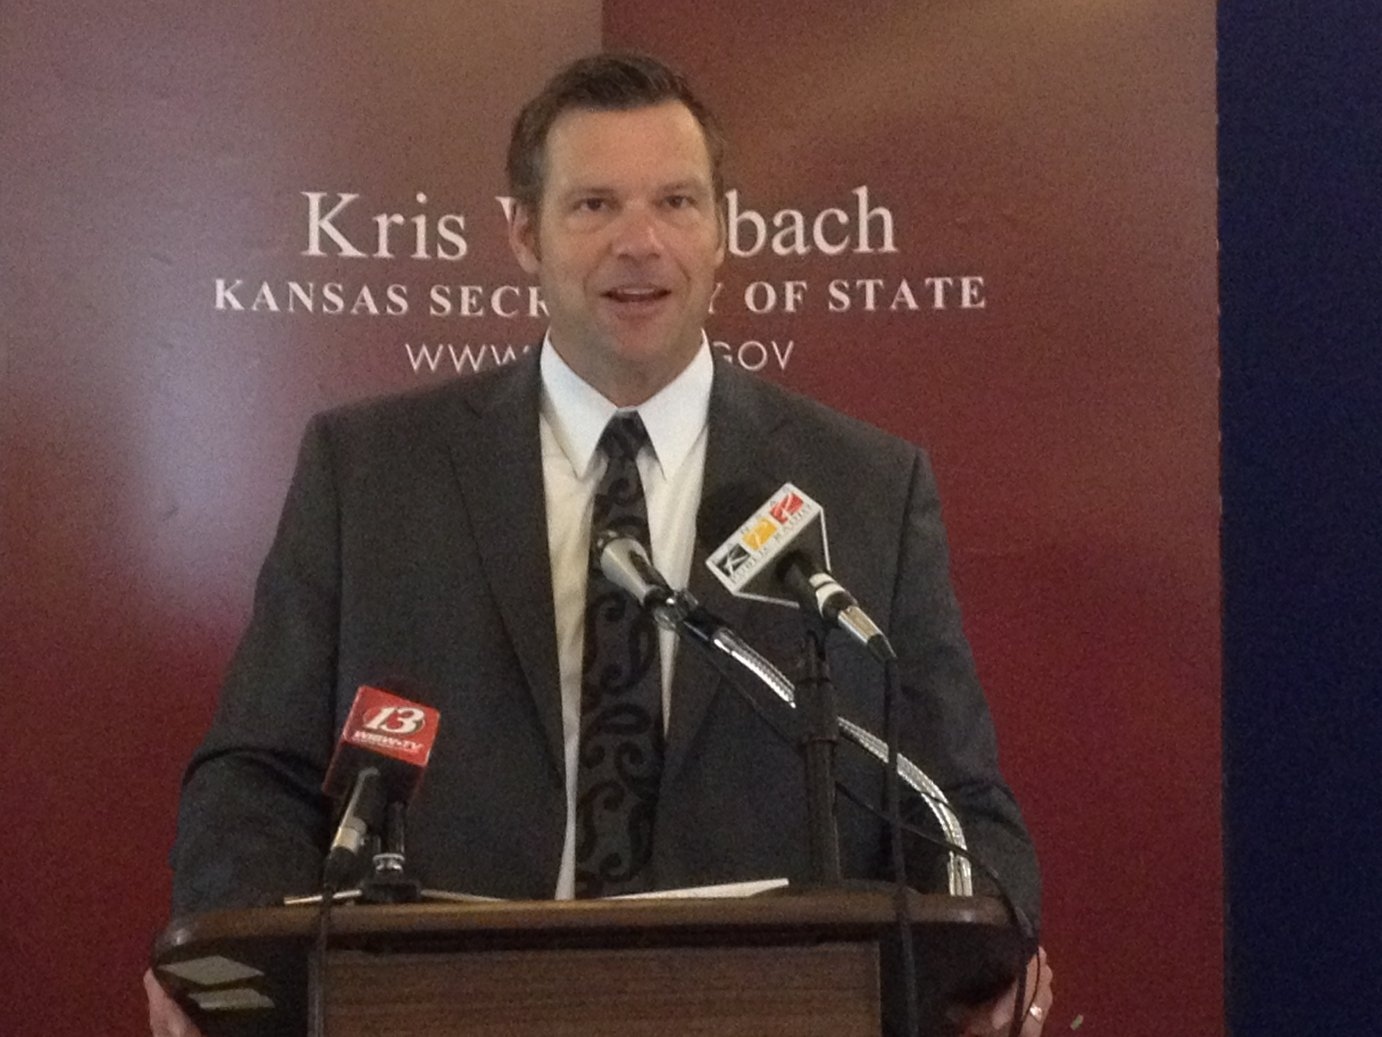 Kansas Secretary of State Kris Kobach, file photo (Photo by J. Schafer)